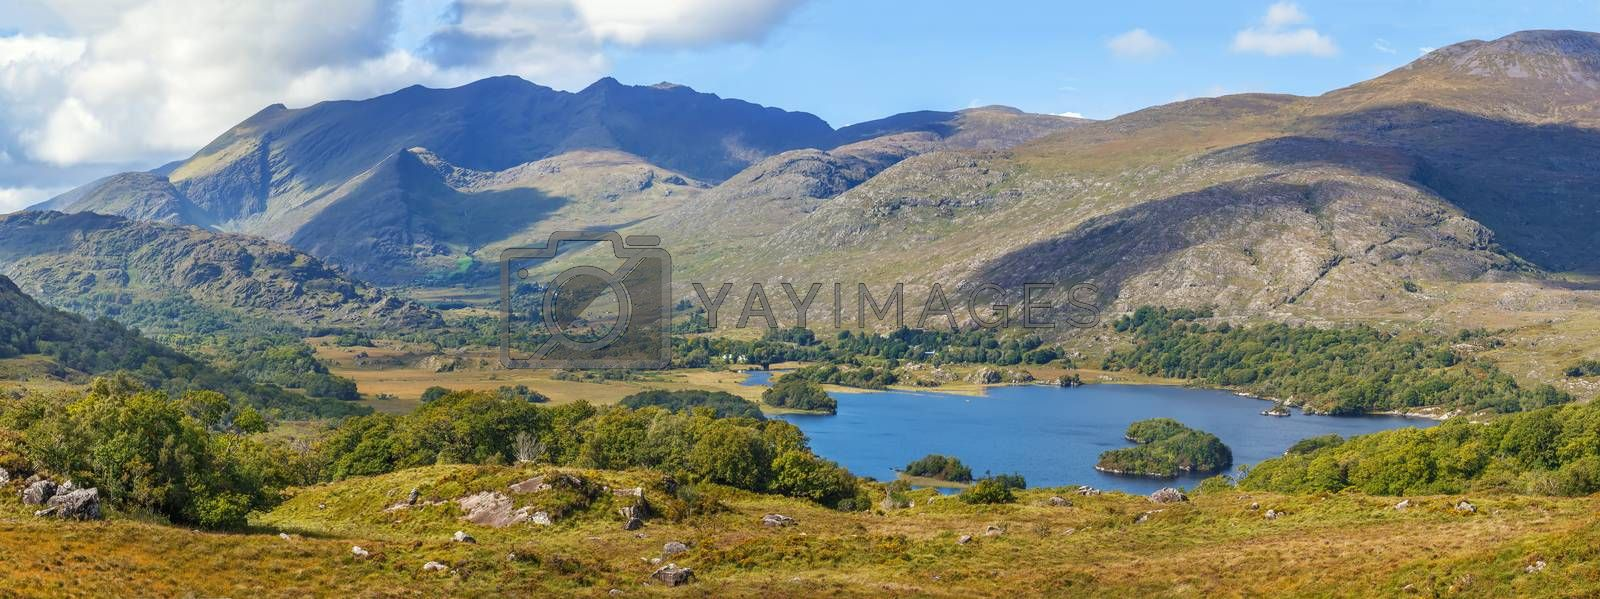 Panoramic landscape from Ladies View is a scenic viewpoint on the Ring of Kerry tourist route. Ireland